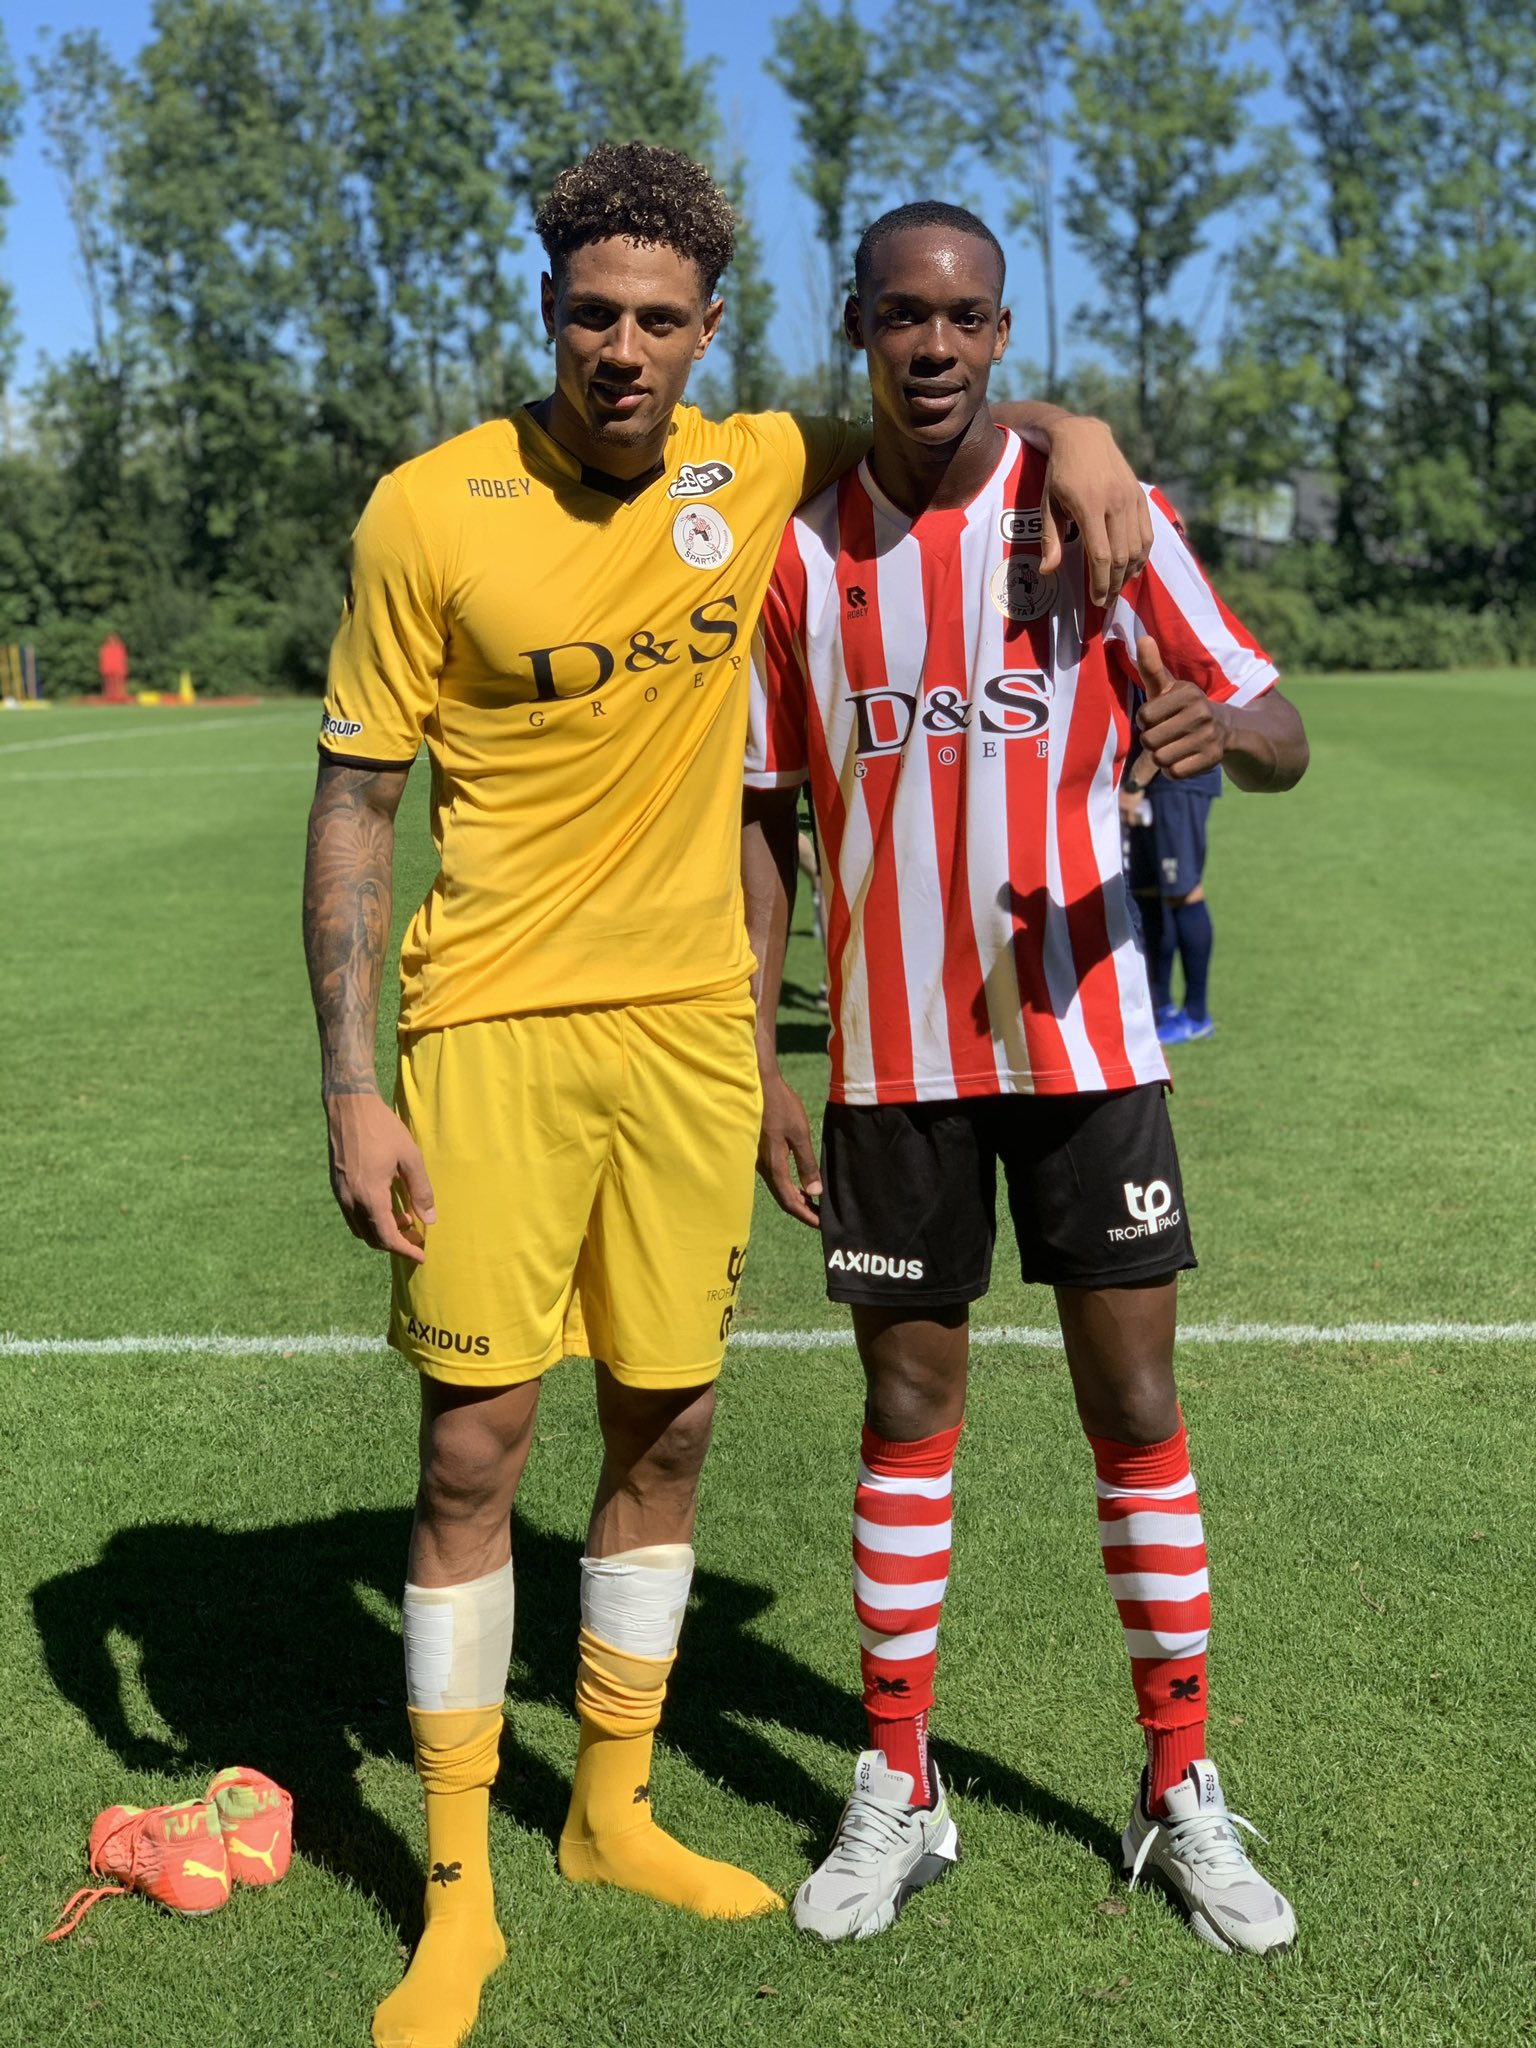 Okoye Delighted To Make Winning Debut With Sparta Rotterdam